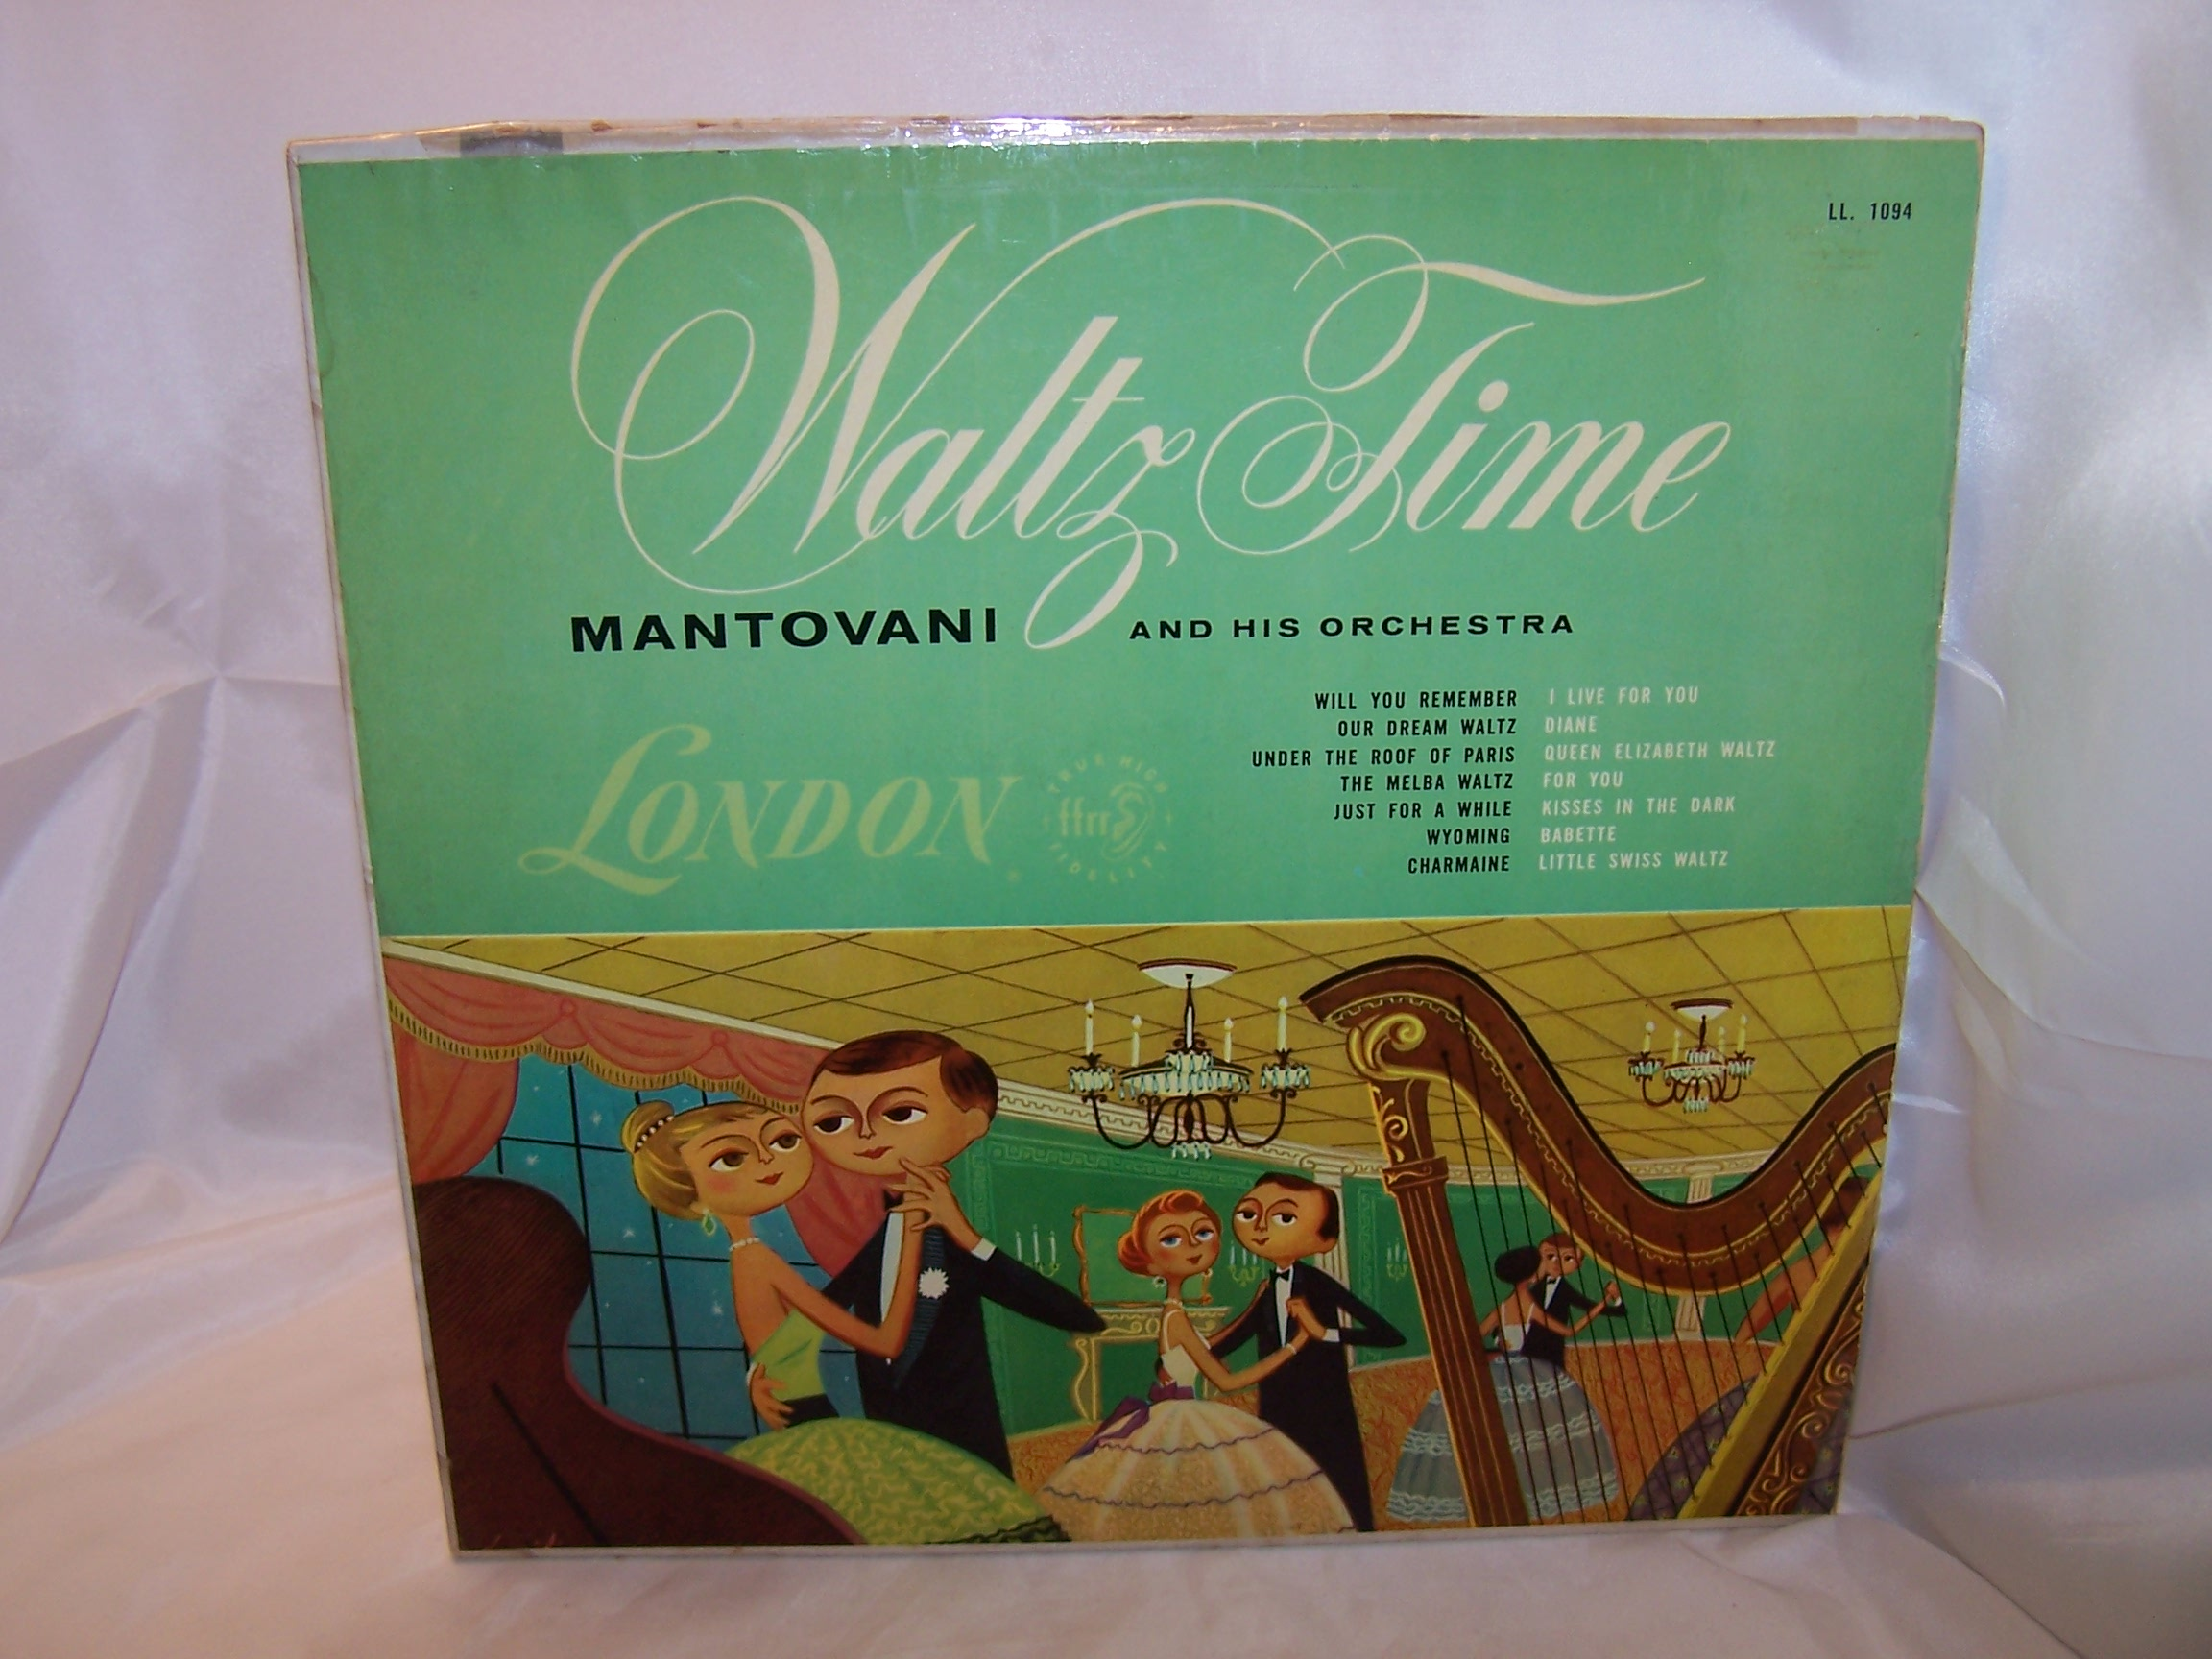 Mantovani and Orchestra, Waltz Time, England, Vintage